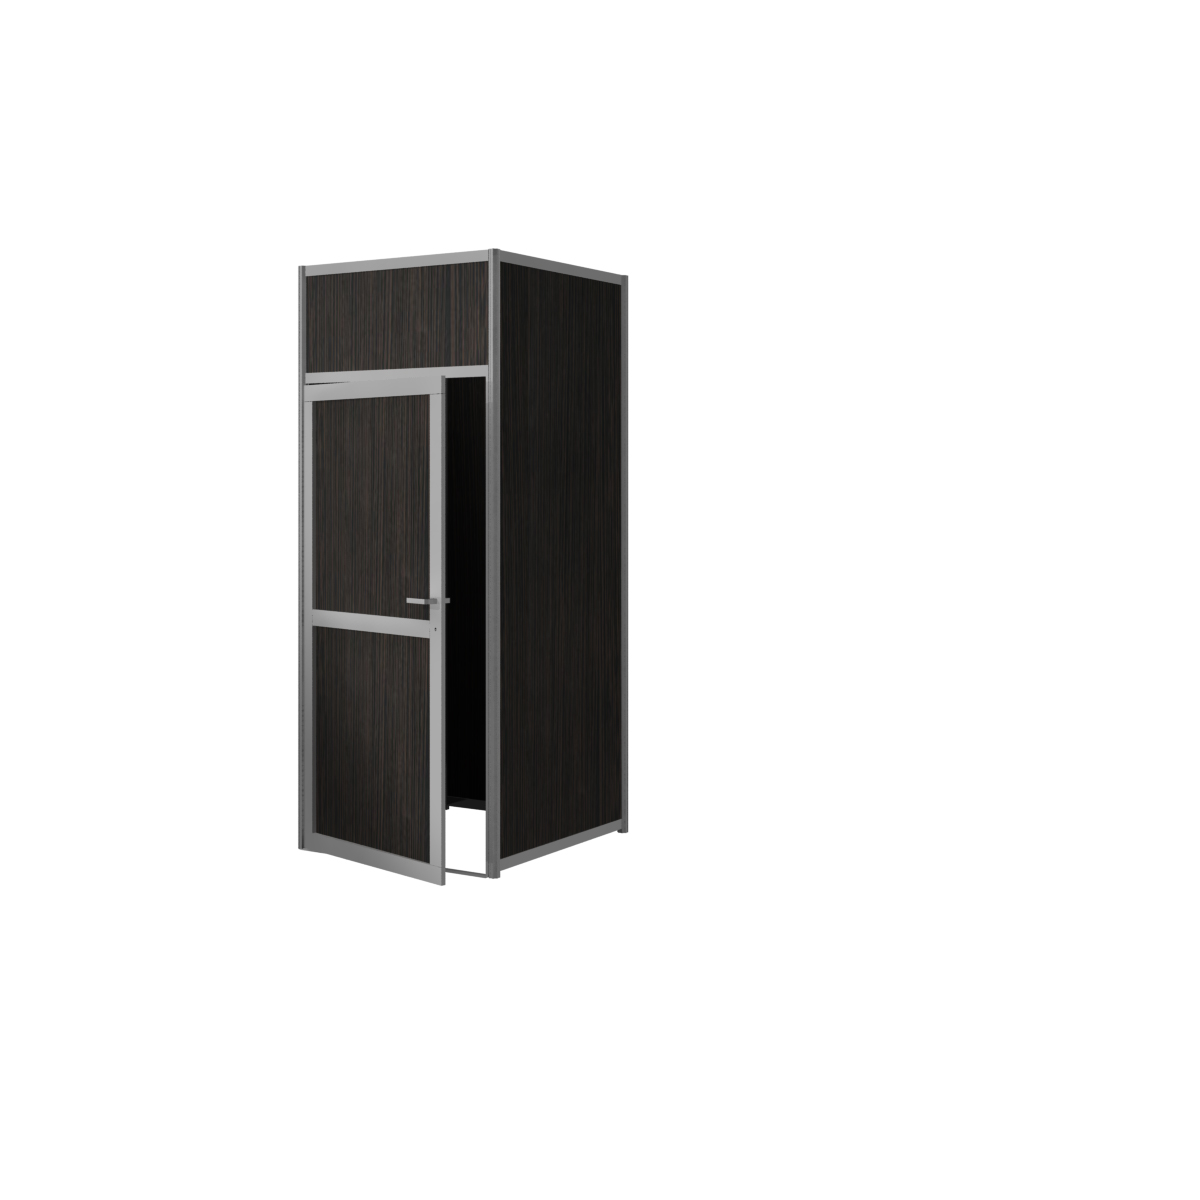 Free-standing aluminum frame storage cabinet with melamine infill - Wenge